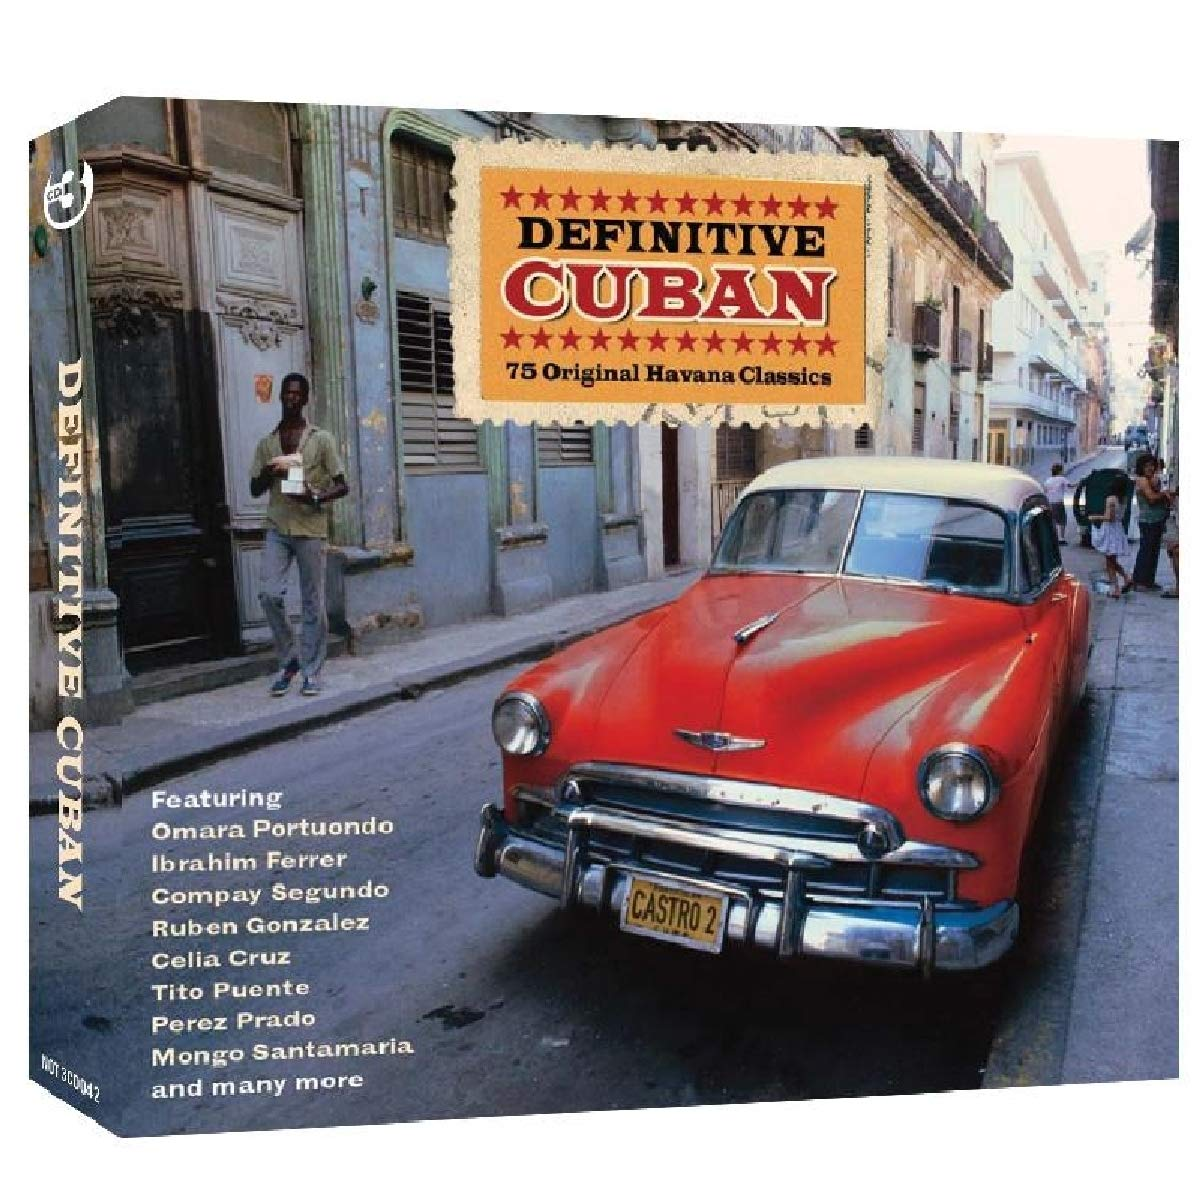 Definitive Cuban by CD